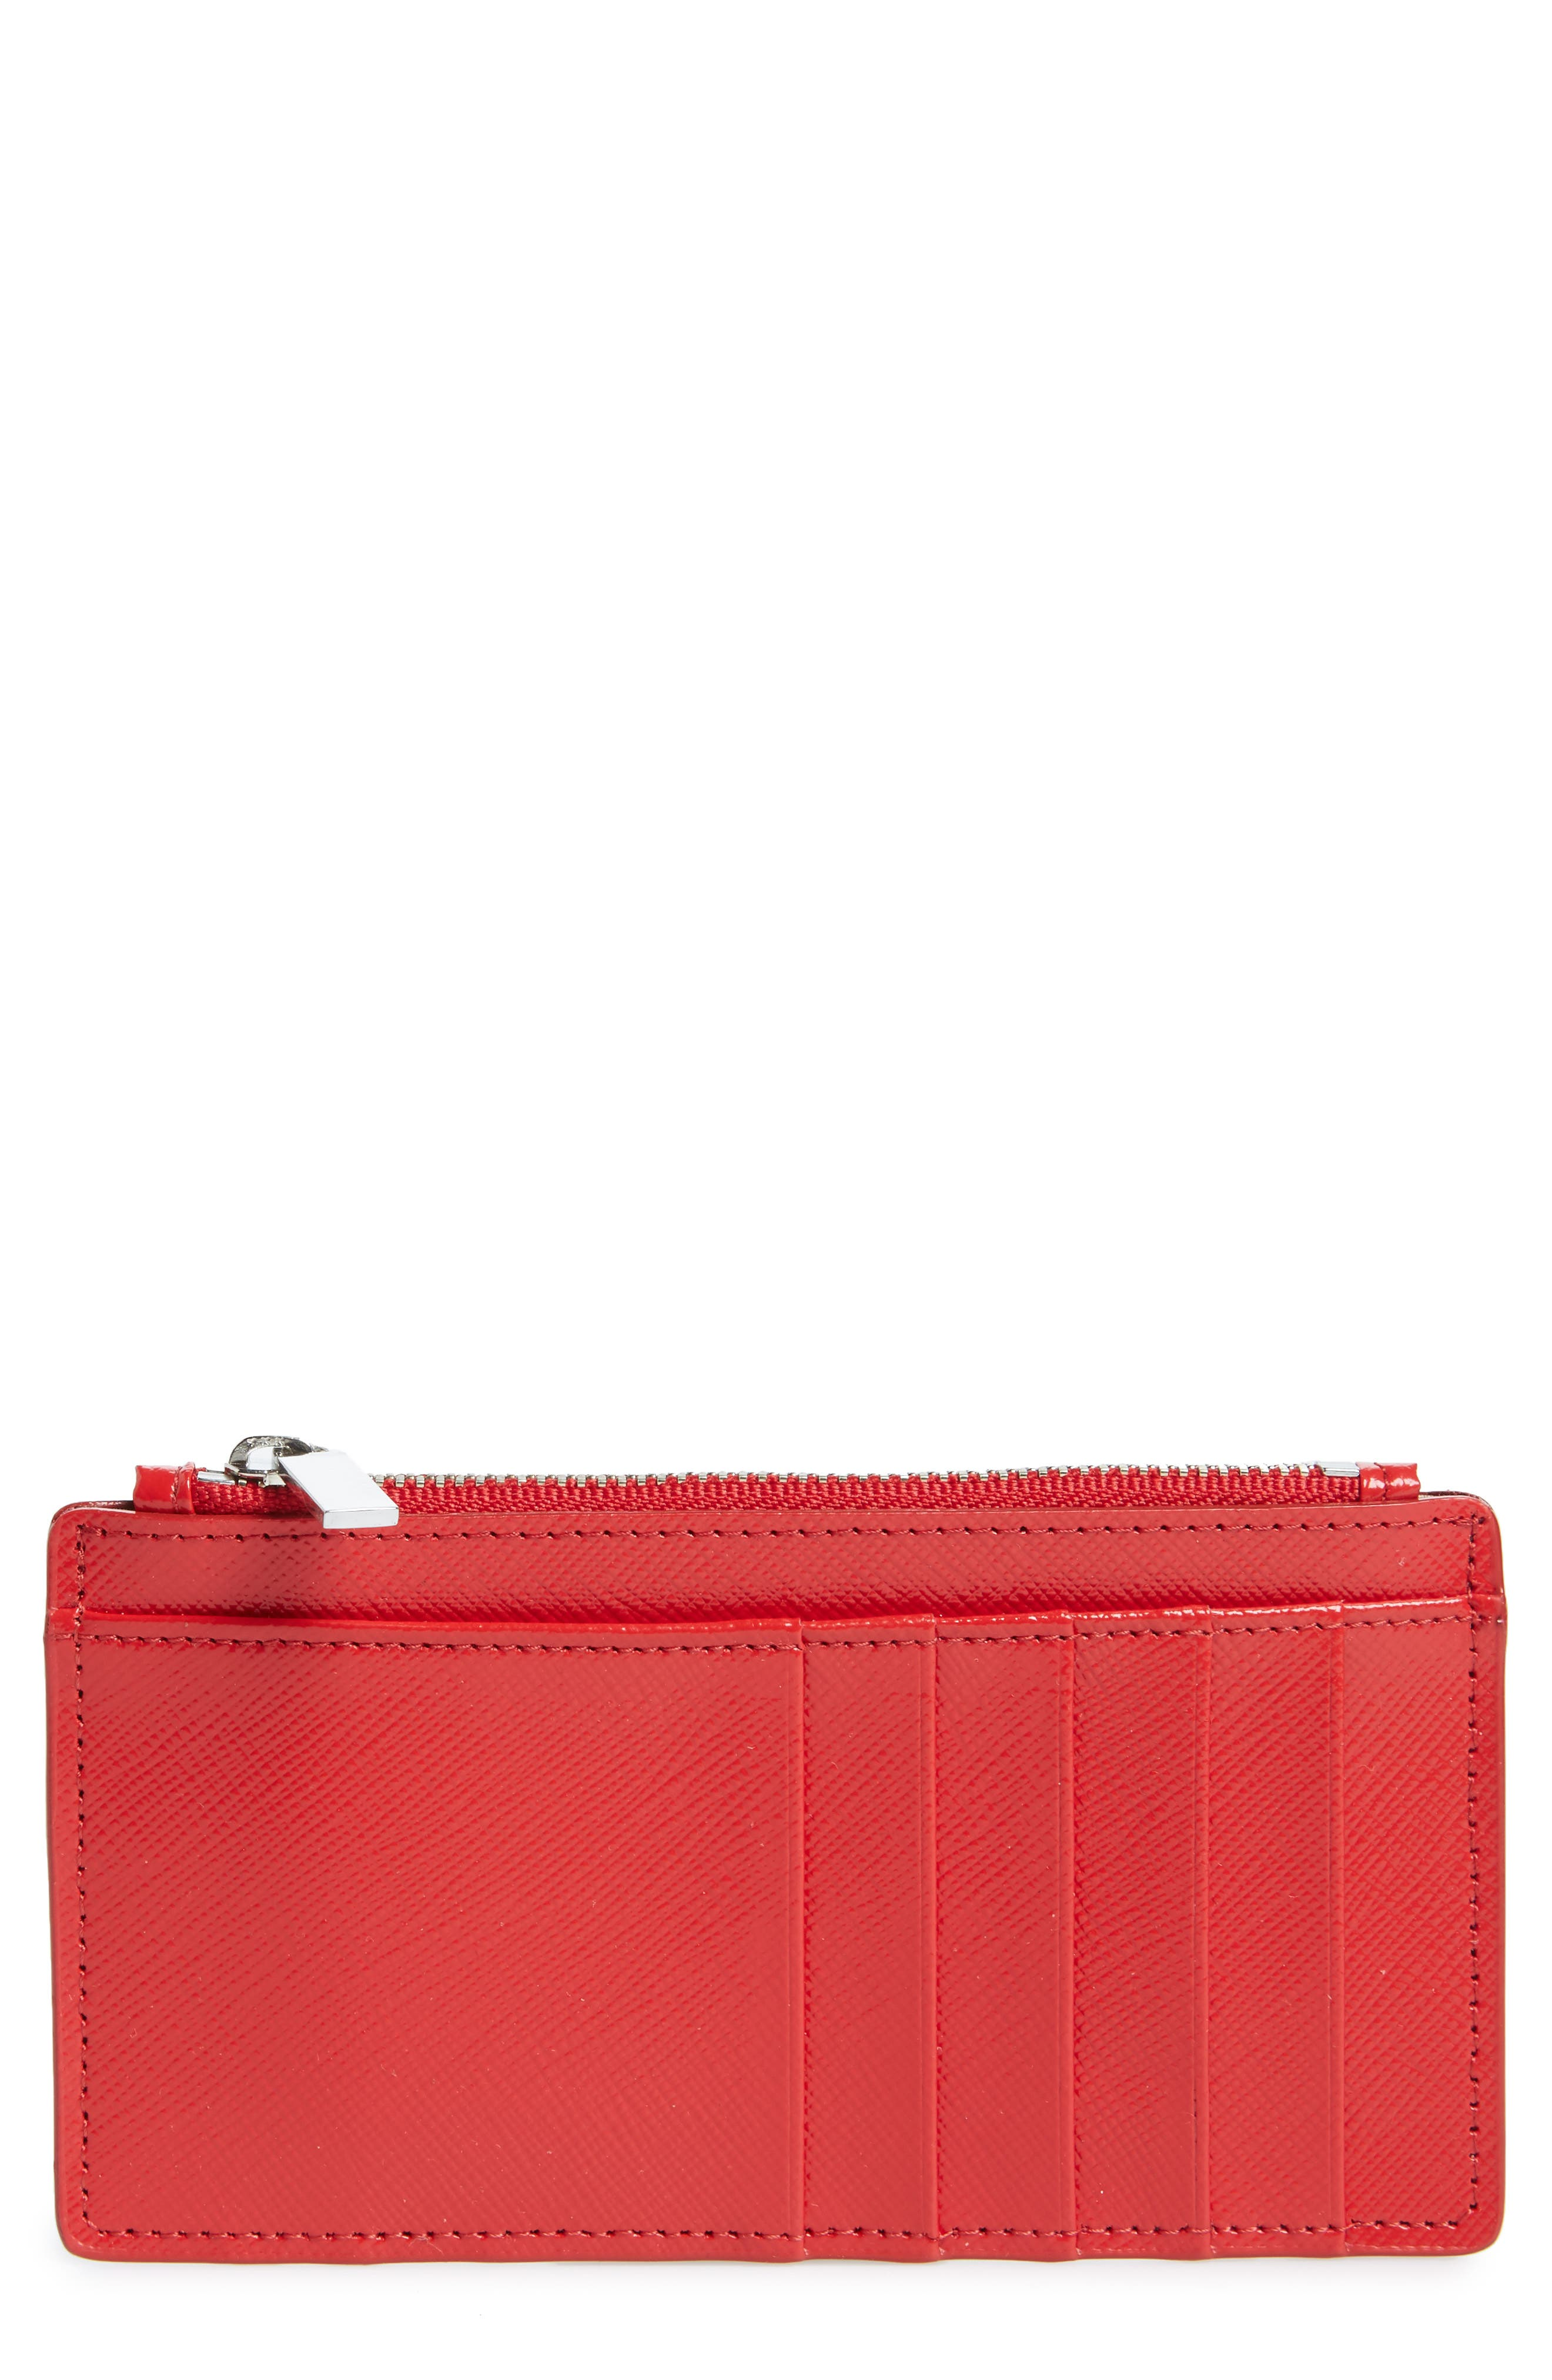 Leather Card Case,                             Main thumbnail 1, color,                             Red Ribbon